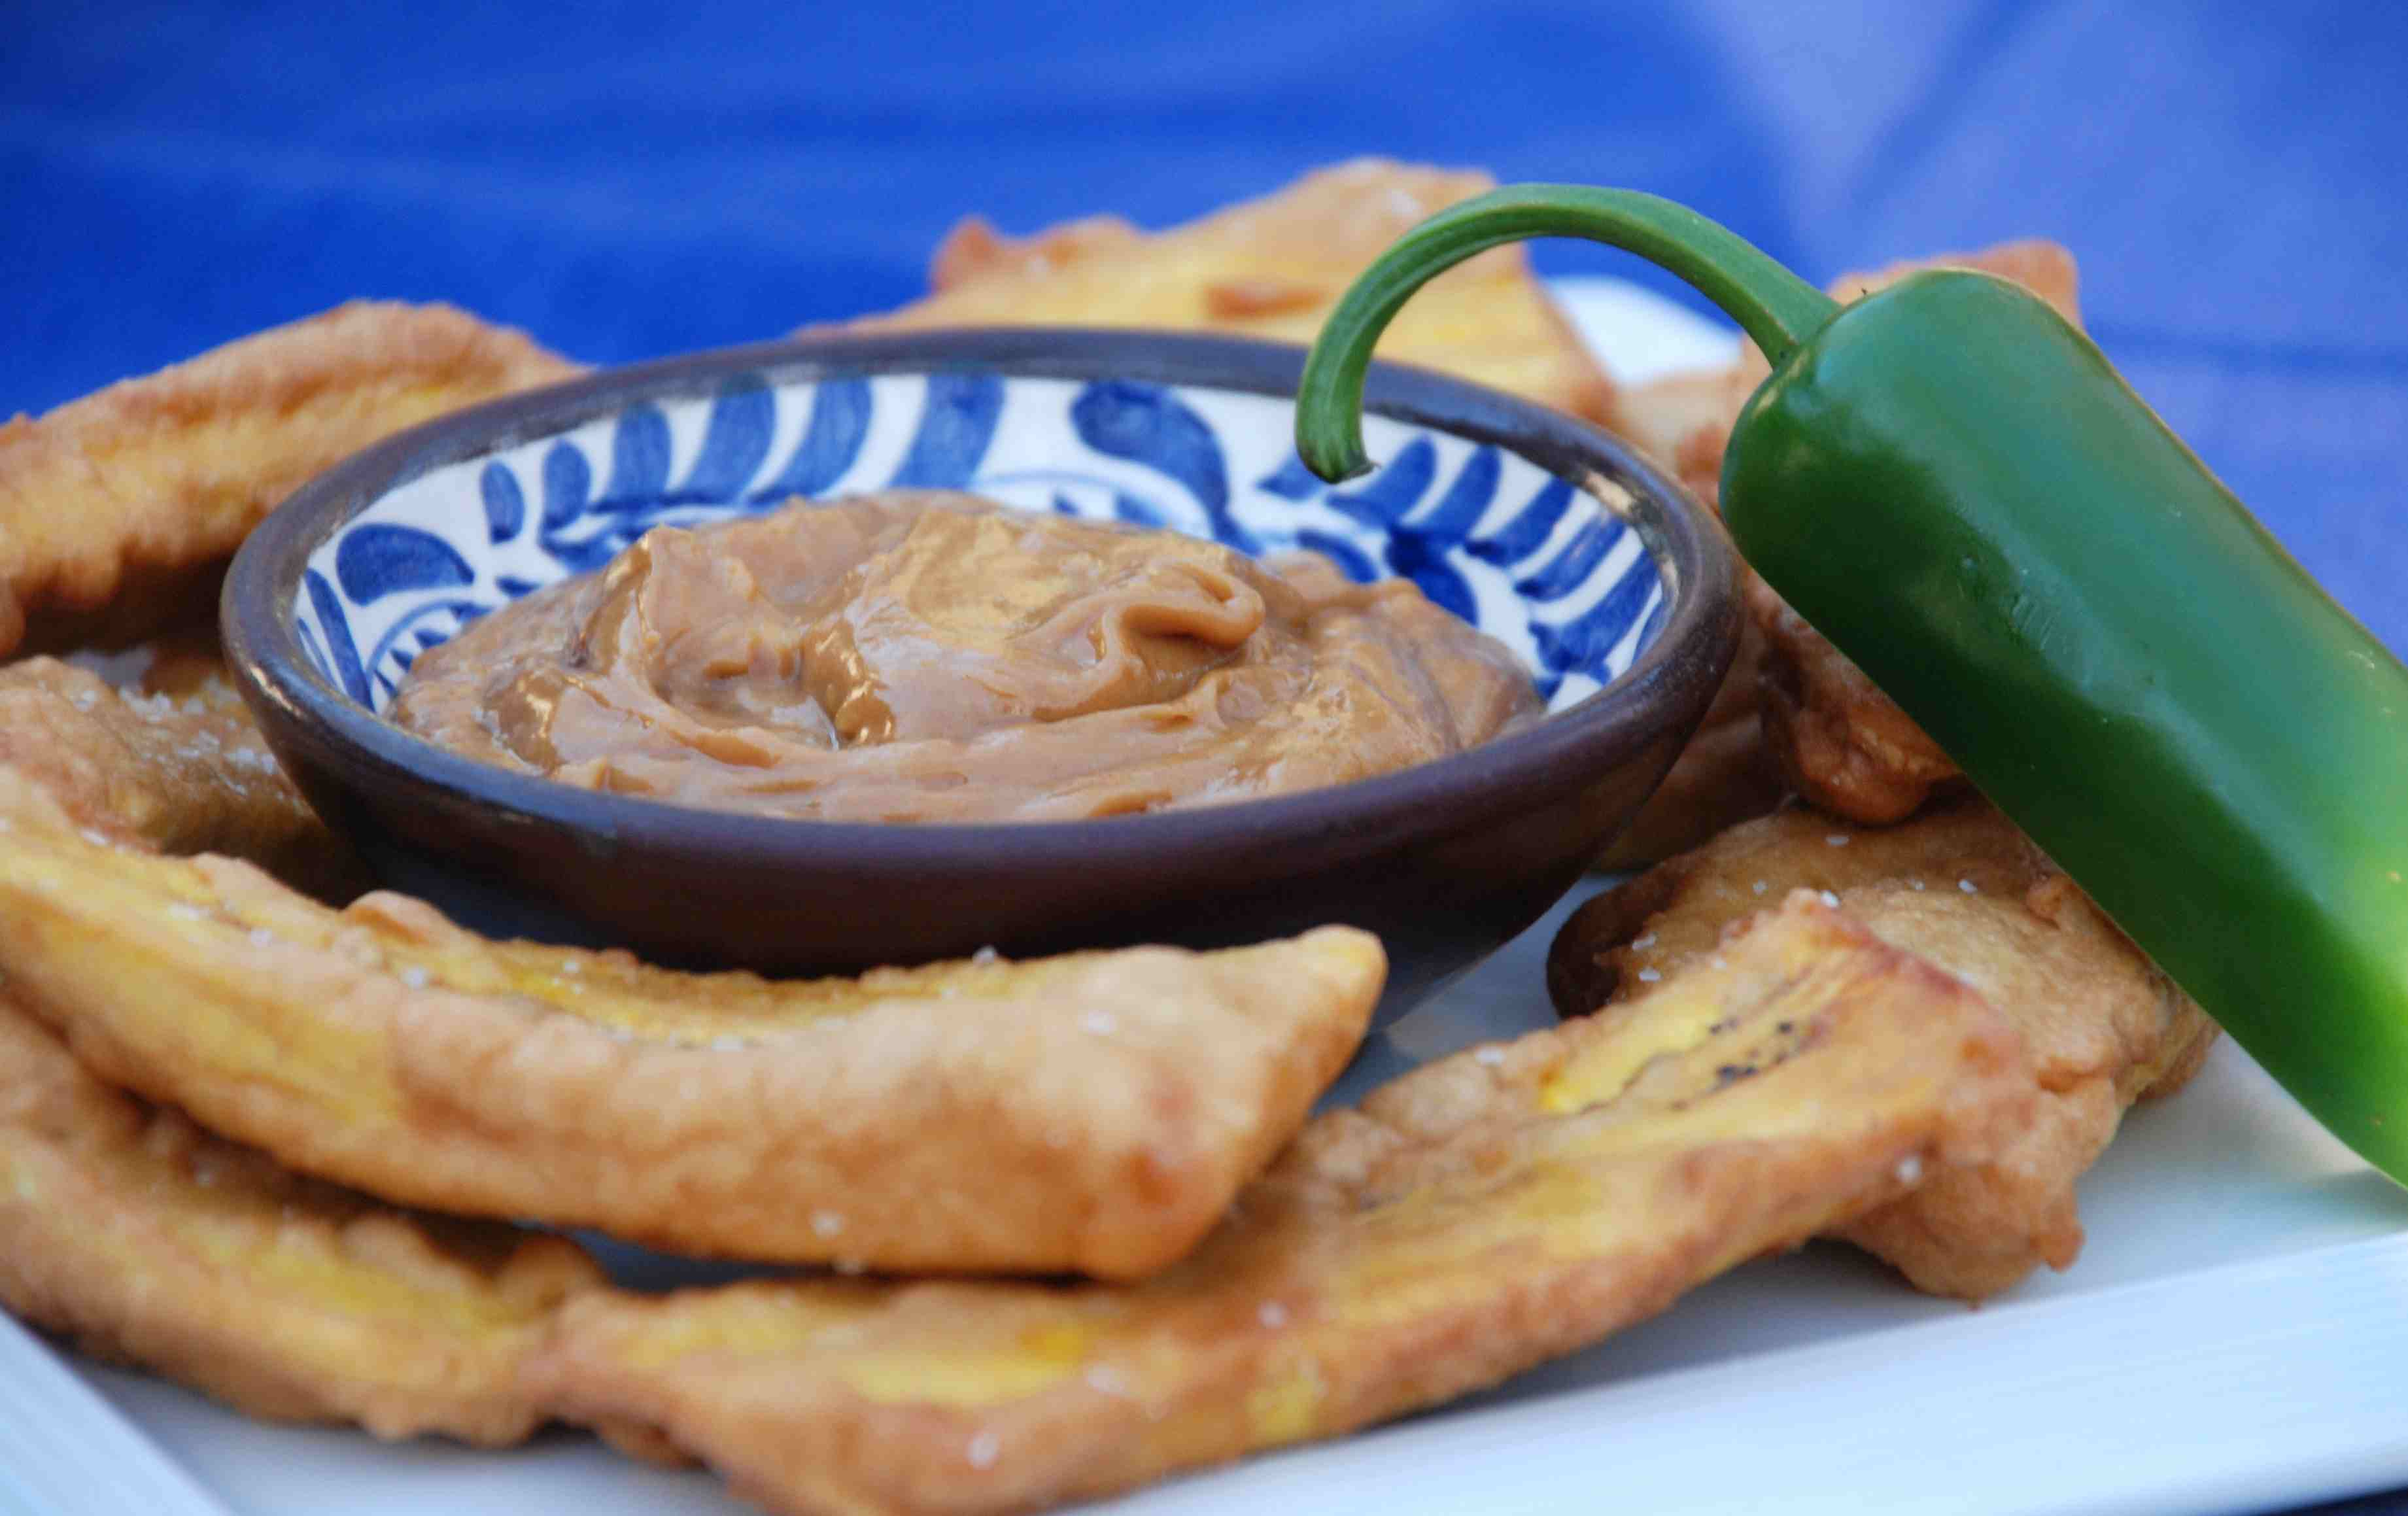 Fried plantains with a bowl of spicy peanut sauce